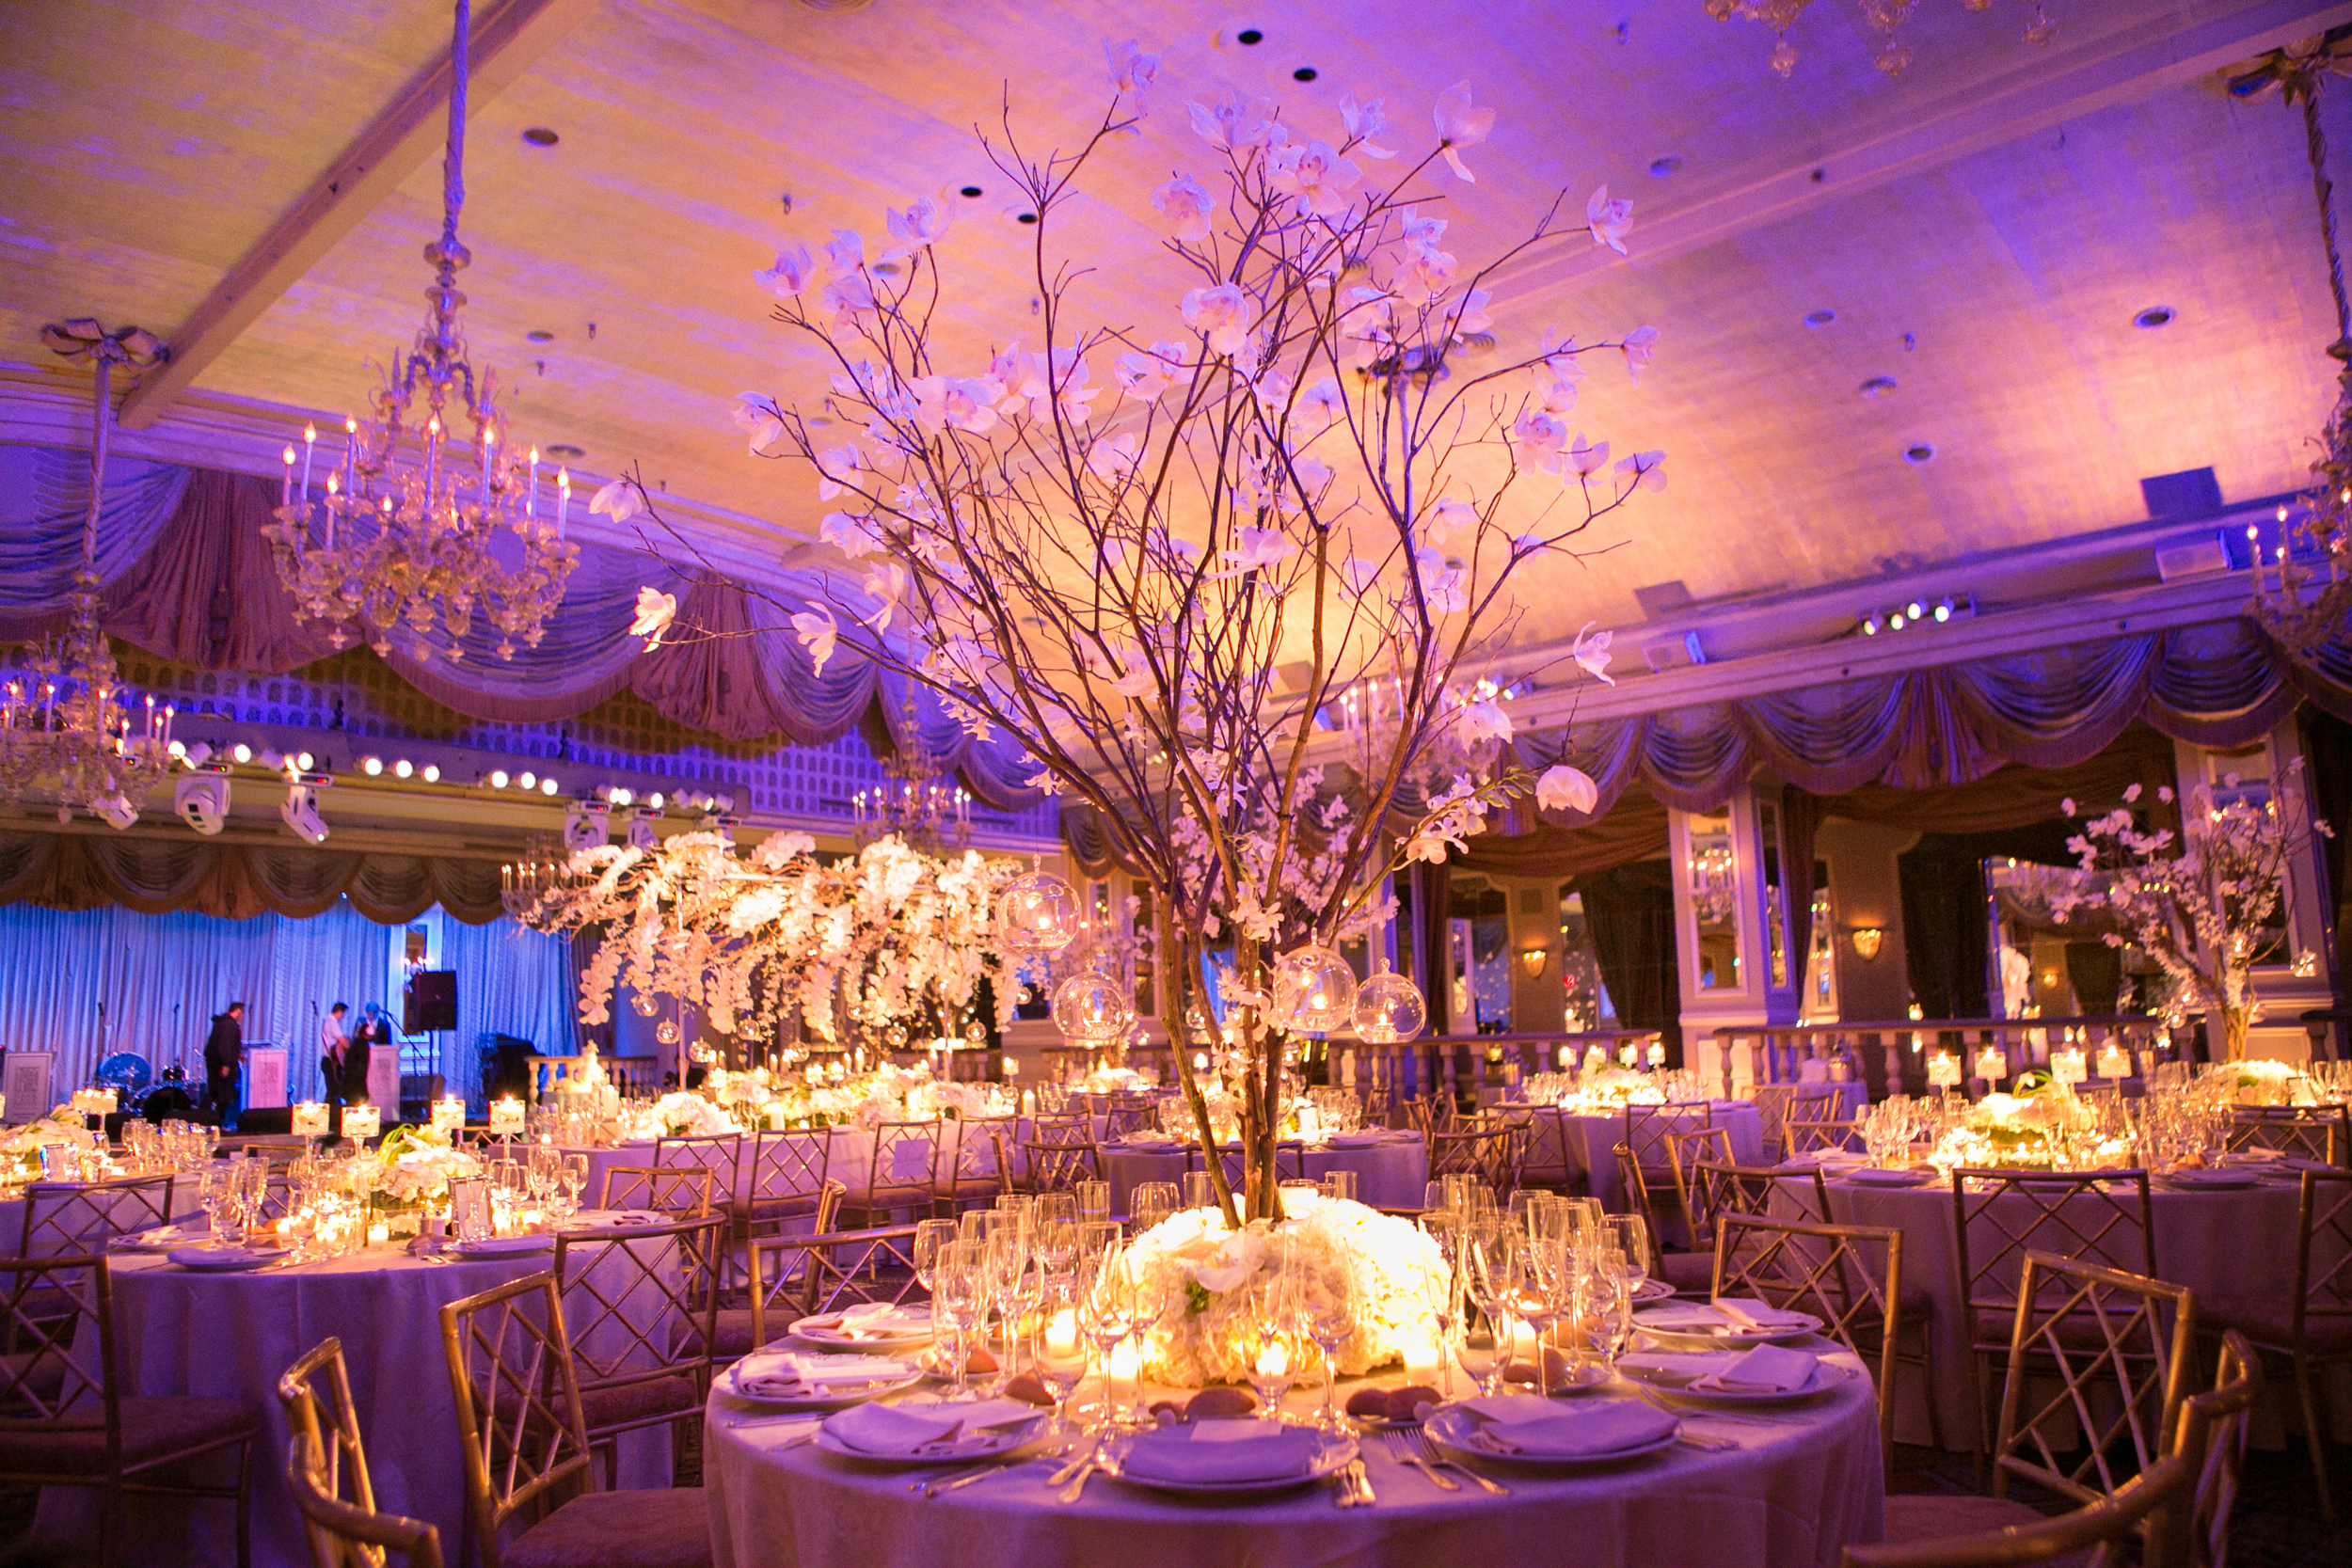 NYC-Wedding-Planner-Andrea-Freeman-Events-The-Pierre-15.jpg